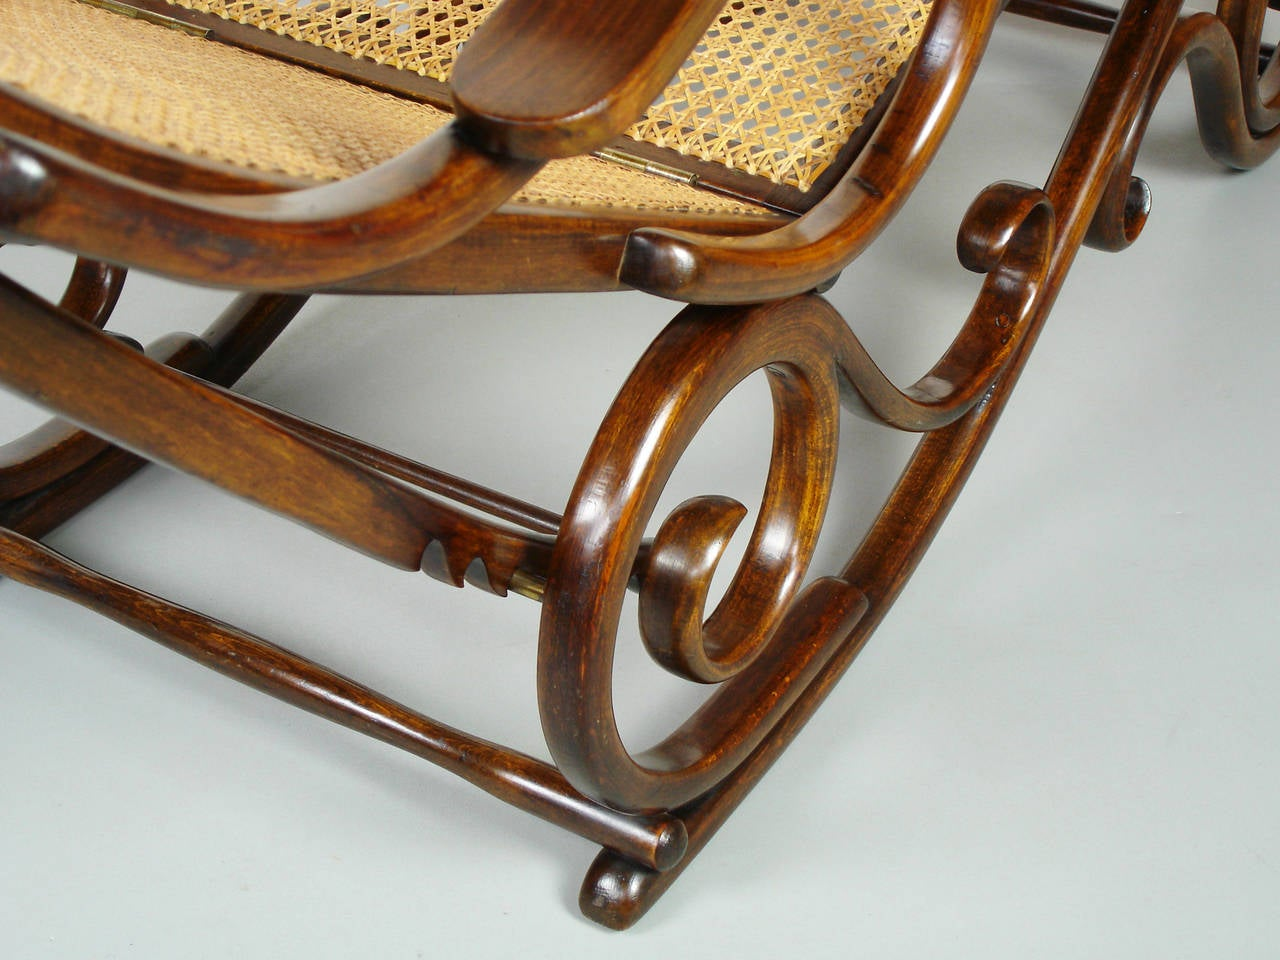 Bent wood chaise longue attributed to thonet at 1stdibs for Chaise wooden